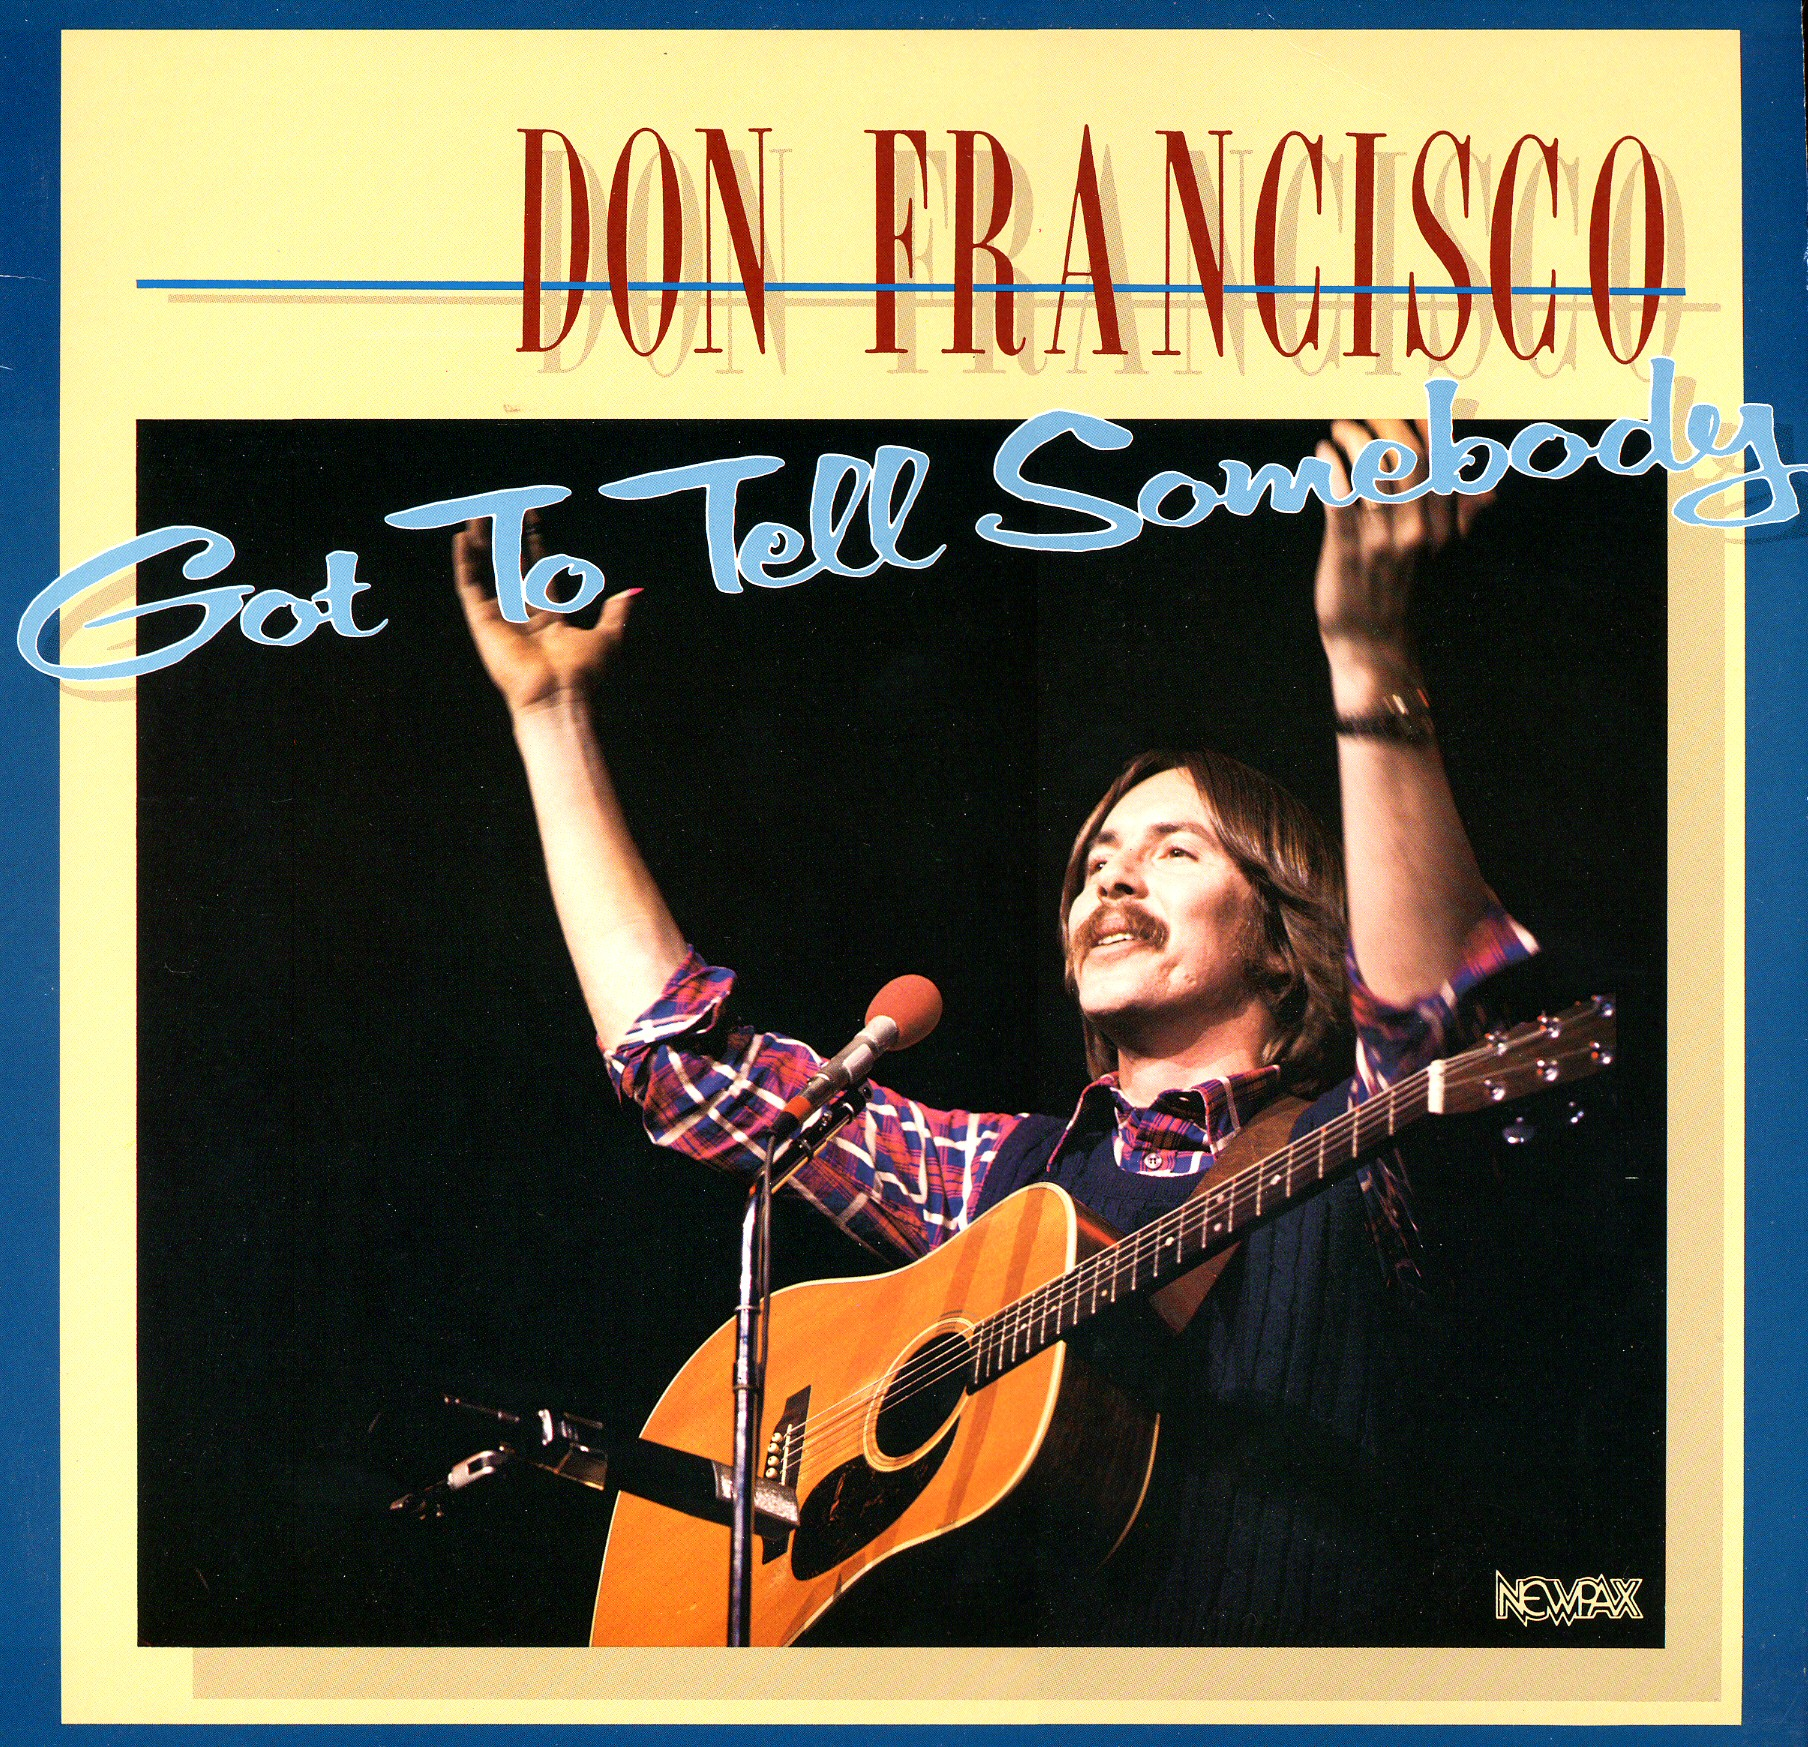 Don Francisco - Got to tell Somebody